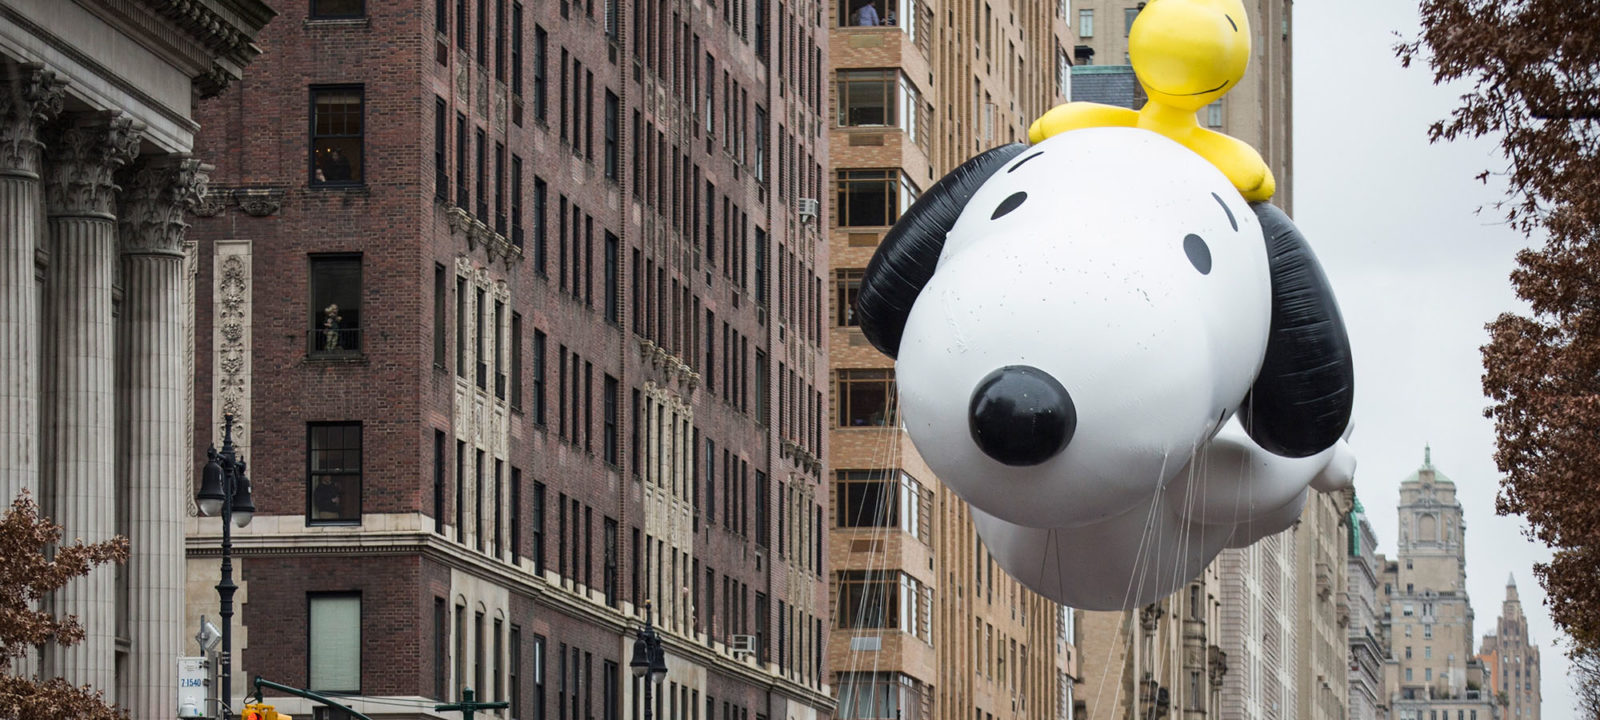 Annual Macy's Thanksgiving Day Parade Delights Spectators In NYC